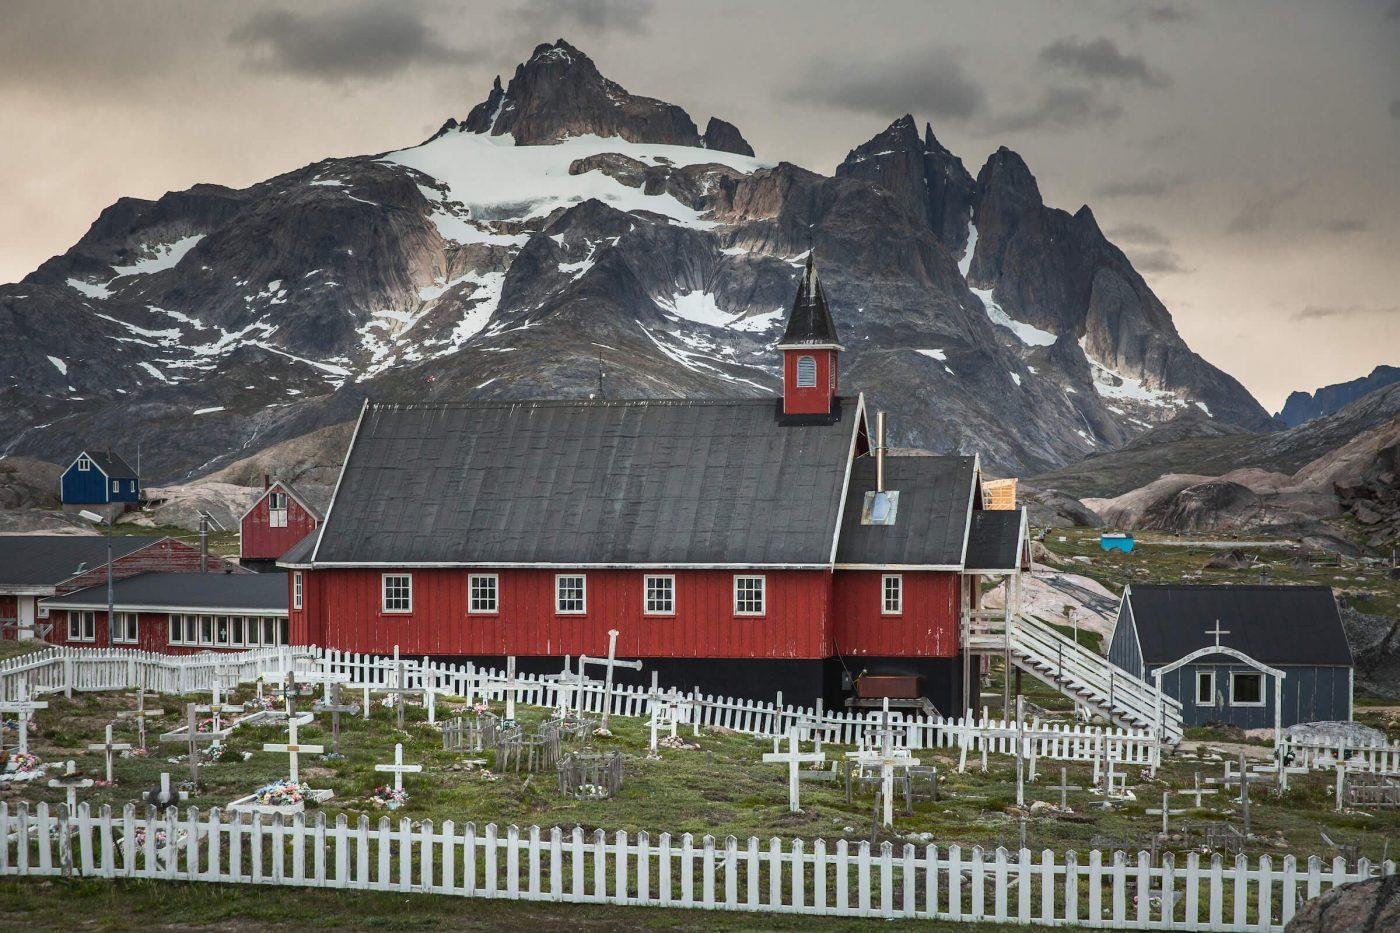 The church in the village Aappilattoq in South Greenland. Photo by Mads Pihl.